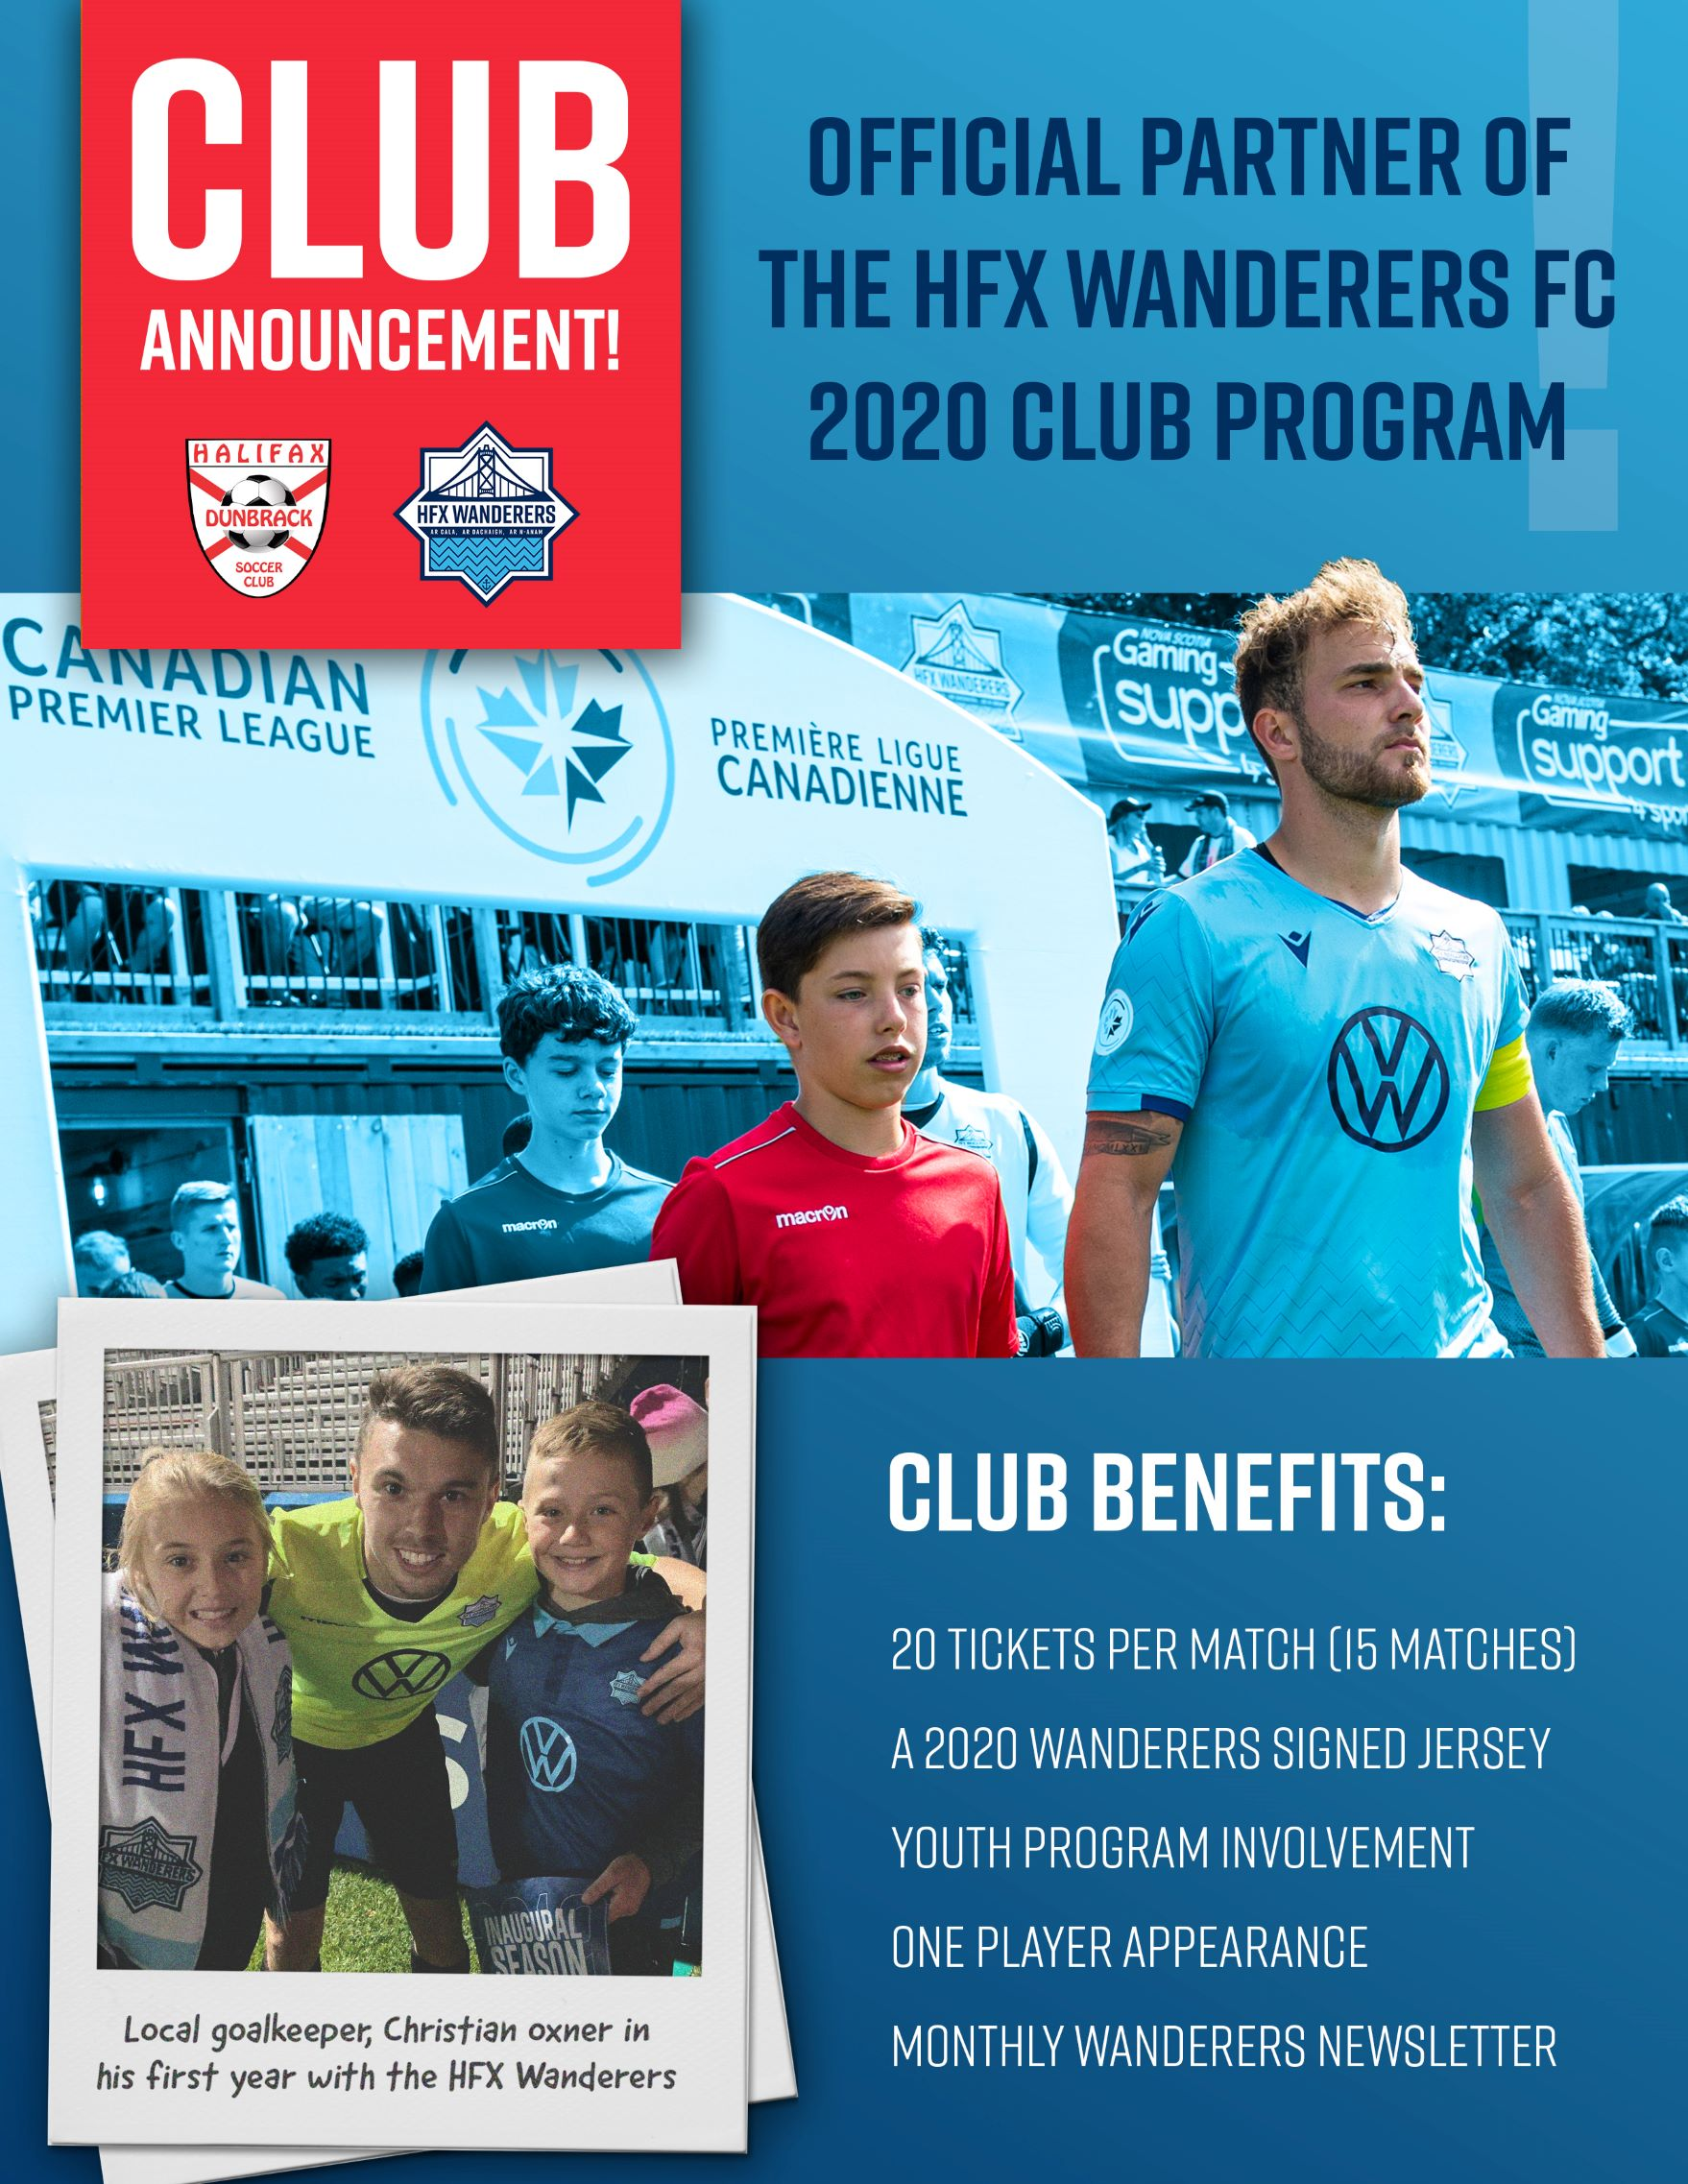 Dunbrack Soccer Announces Club Partnership with HFX Wanderers FC!